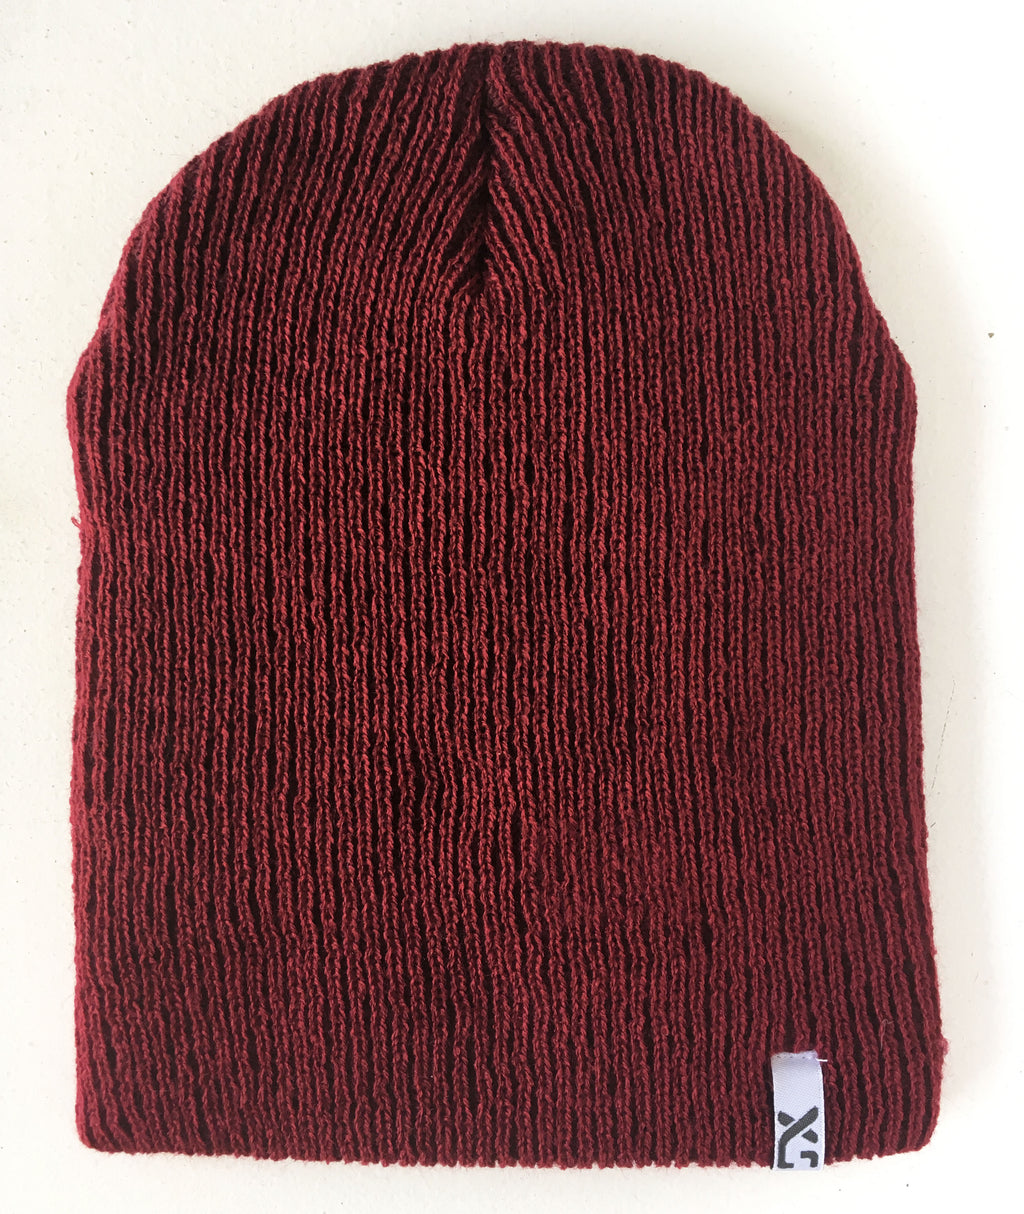 Beanie Hats for Women and Men Winter Fashion Buy Online in Canada at Red  Scarf Equestrian 196dd4ea794